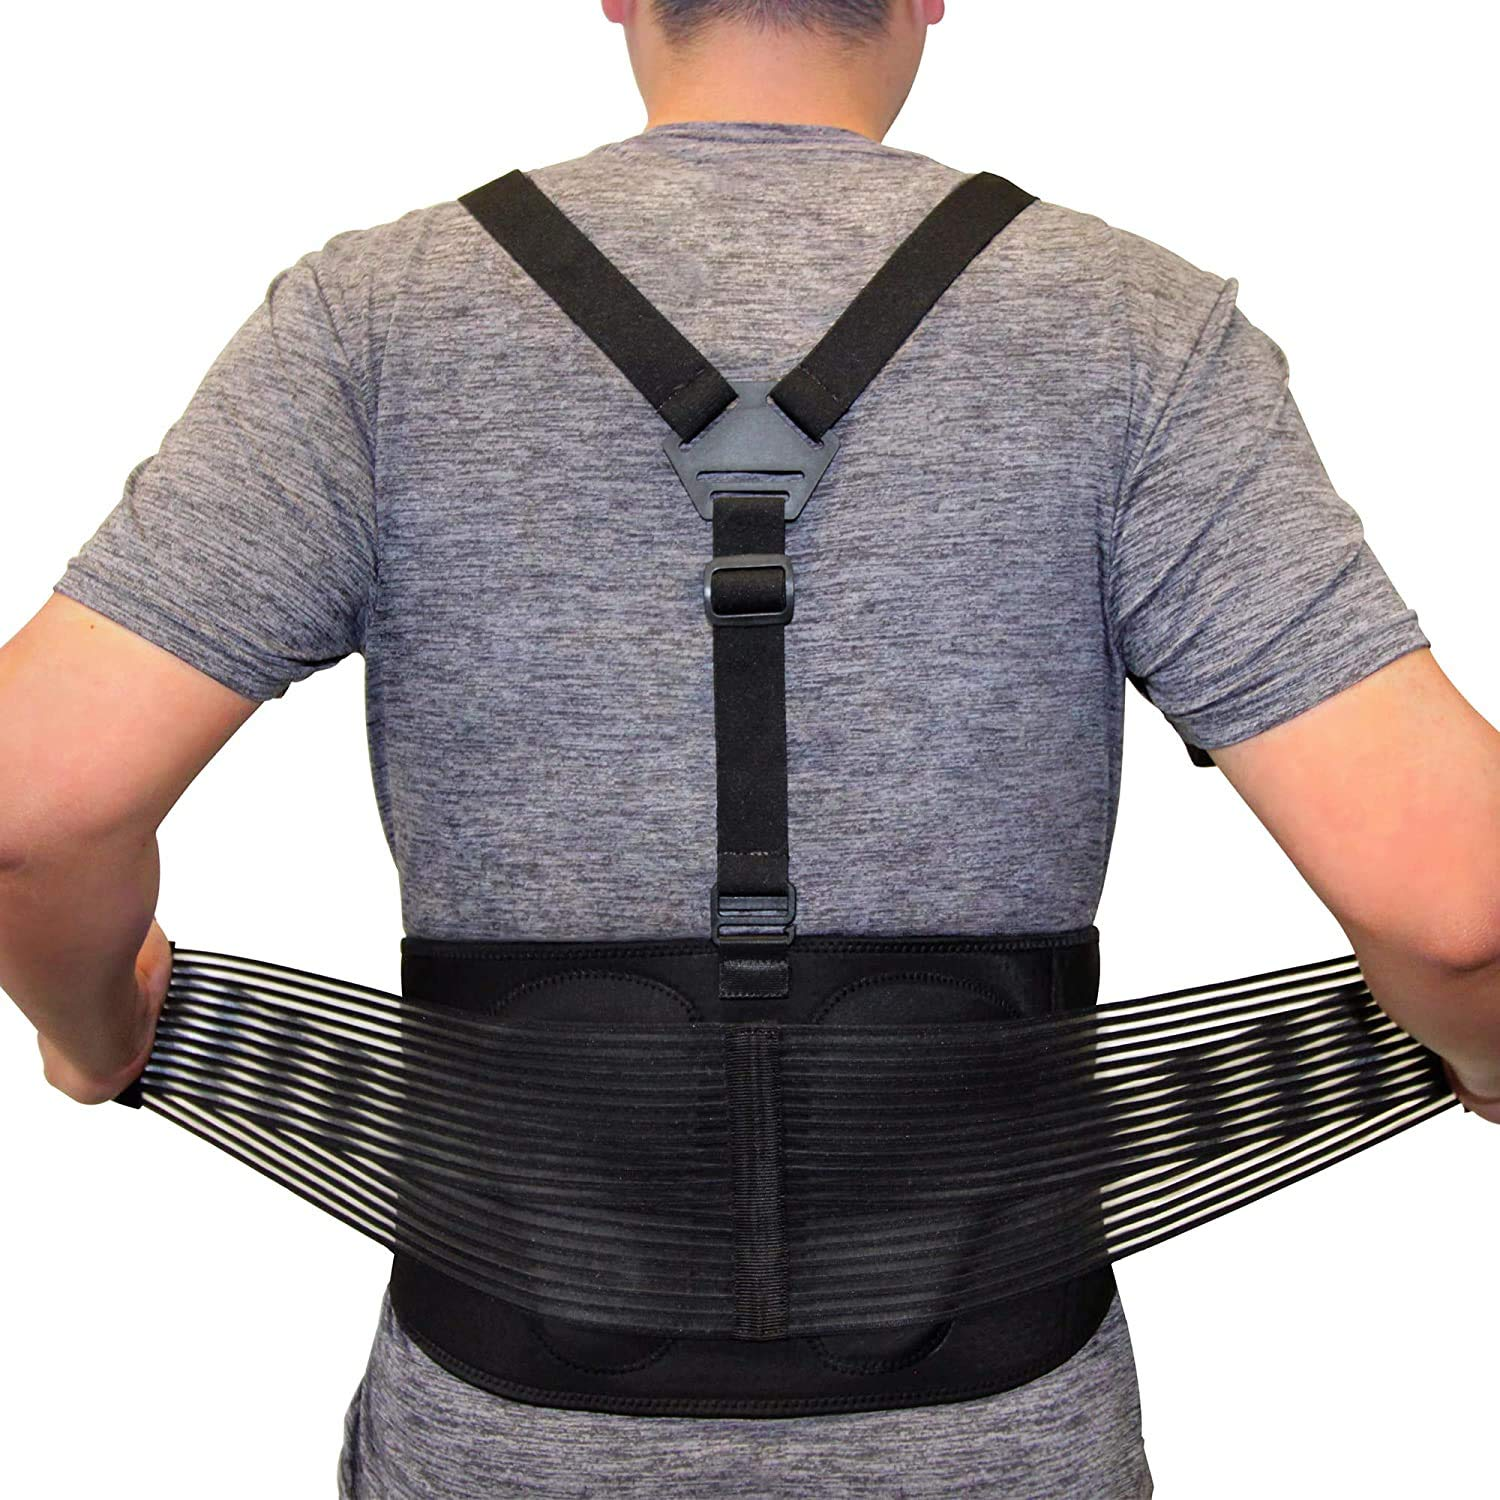 AllyFlex Back Support Belt Fees free for Men Ad and Easy-to-use Women Size 3-Way Plus